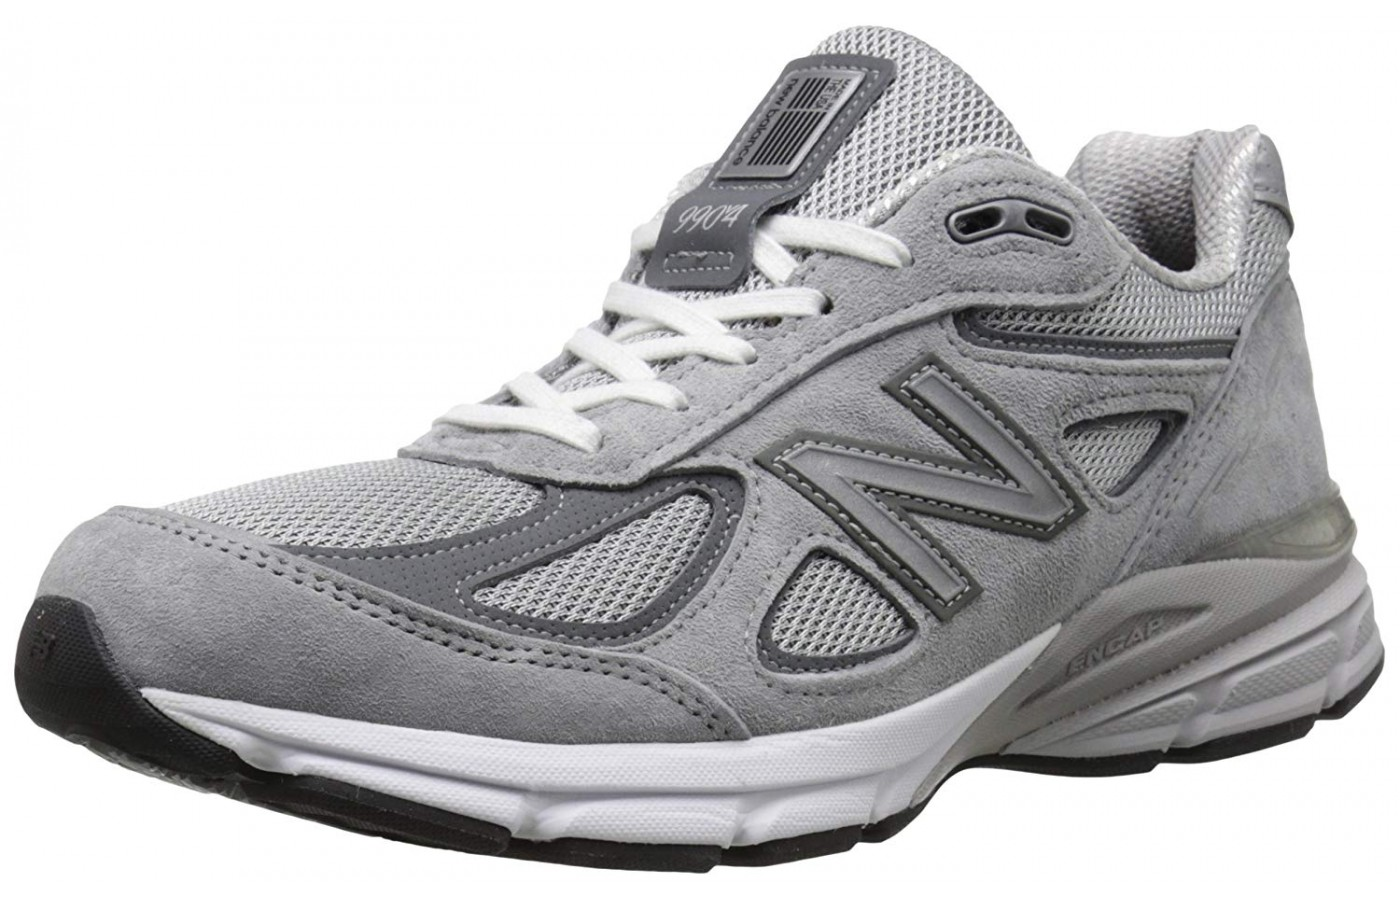 The New Balance 990v4 shown from the front/side view